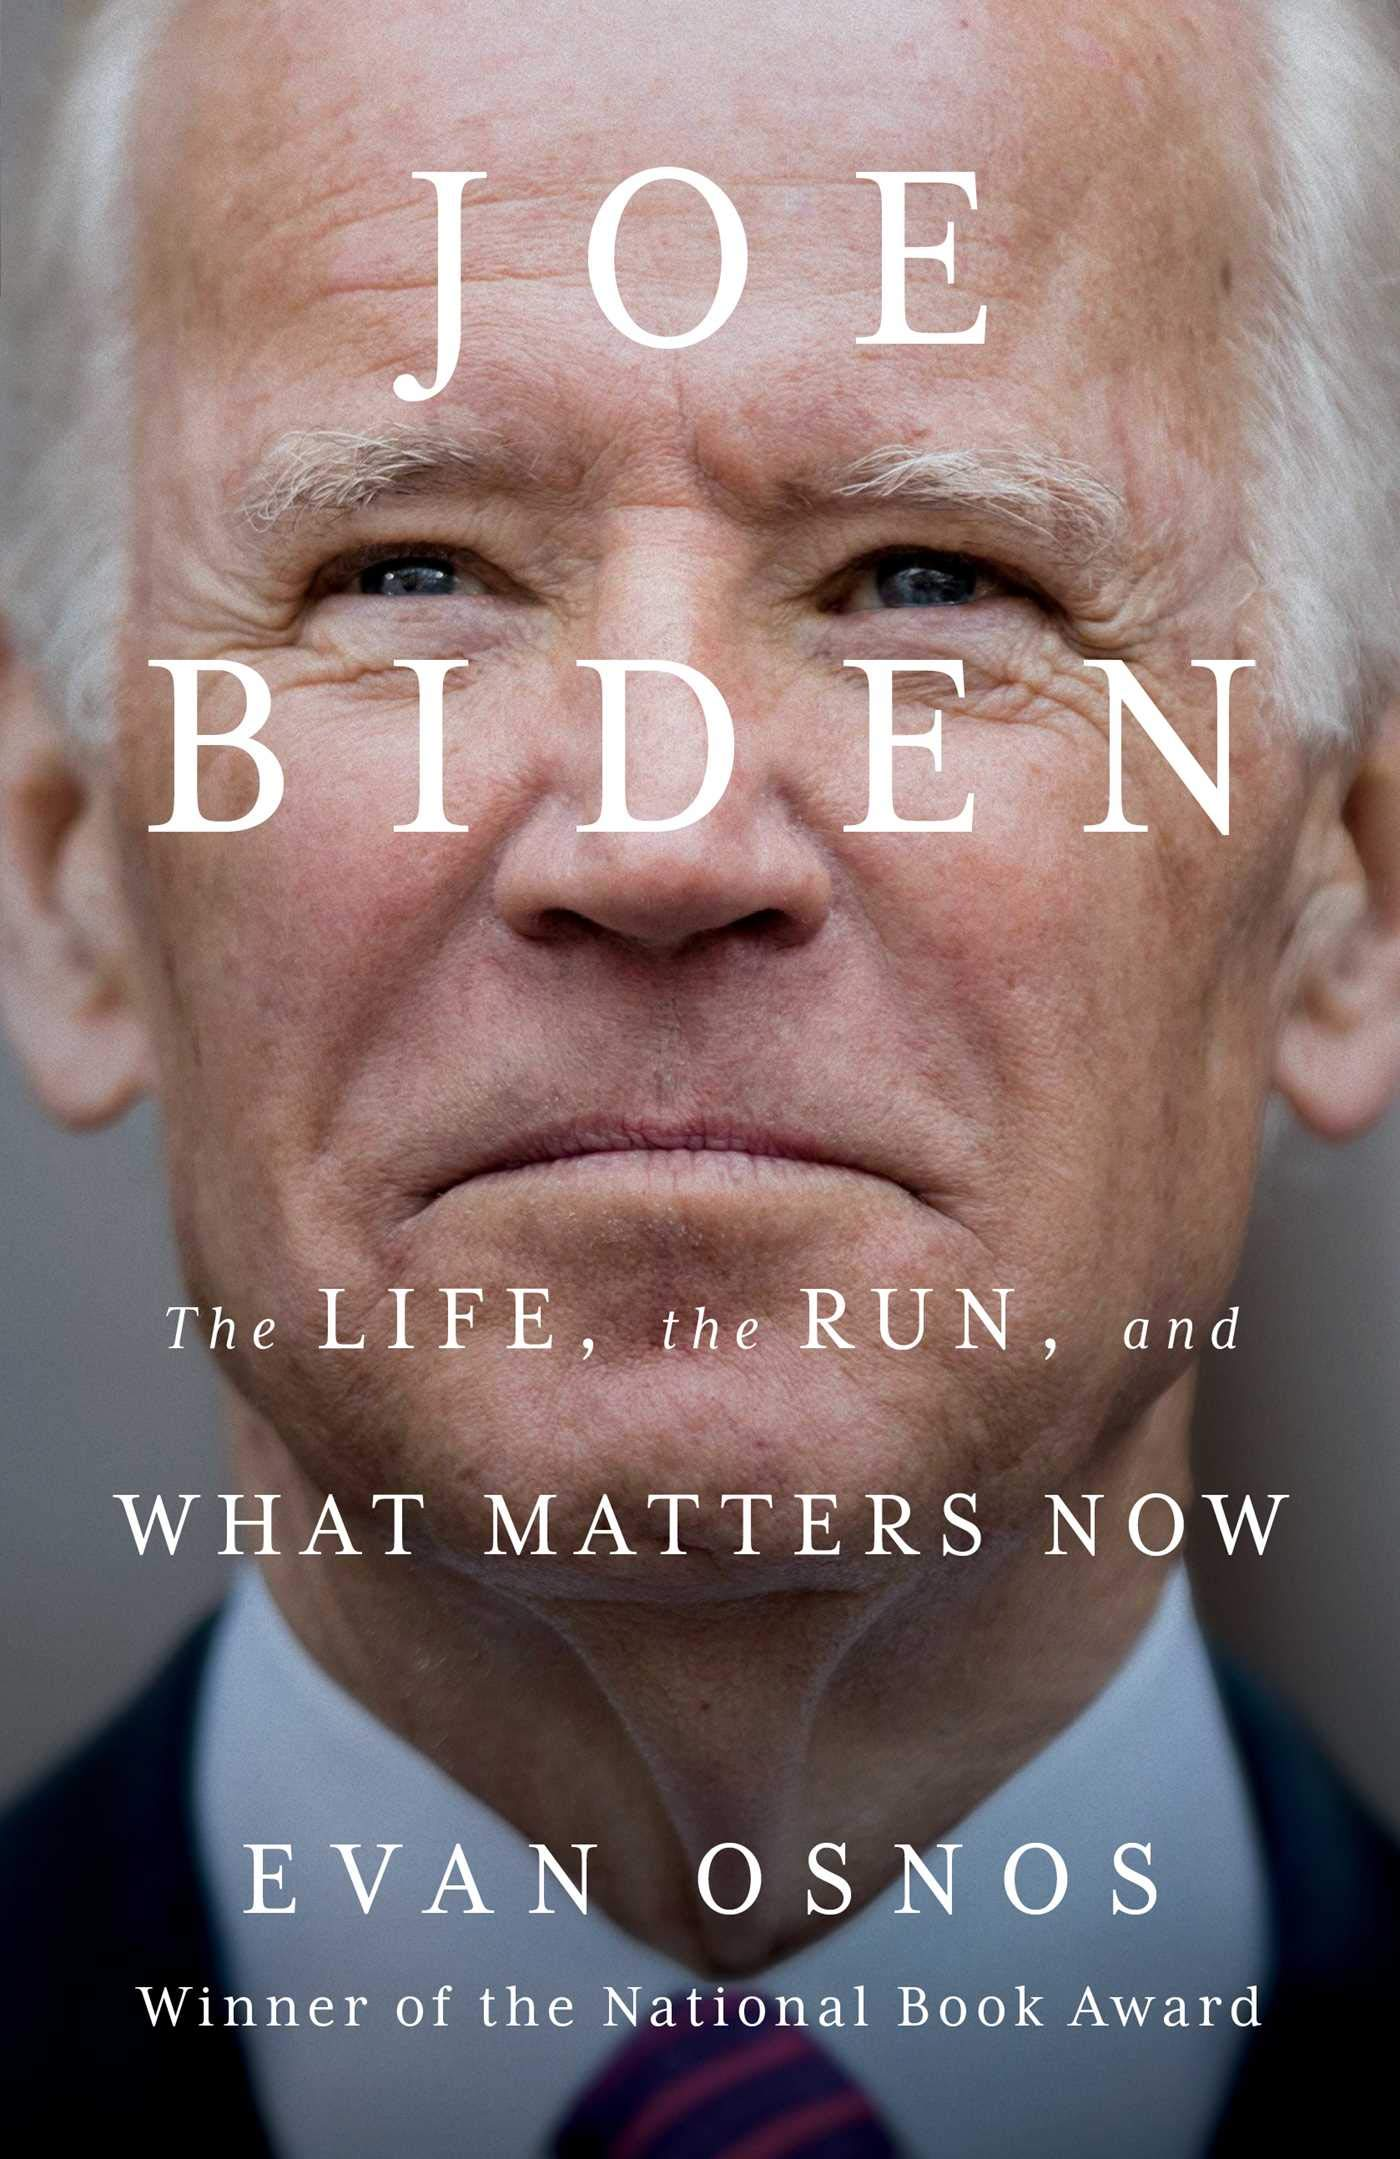 Joe Biden: The Life, the Run, and What Matters Now: Osnos, Evan:  9781982174026: Amazon.com: Books